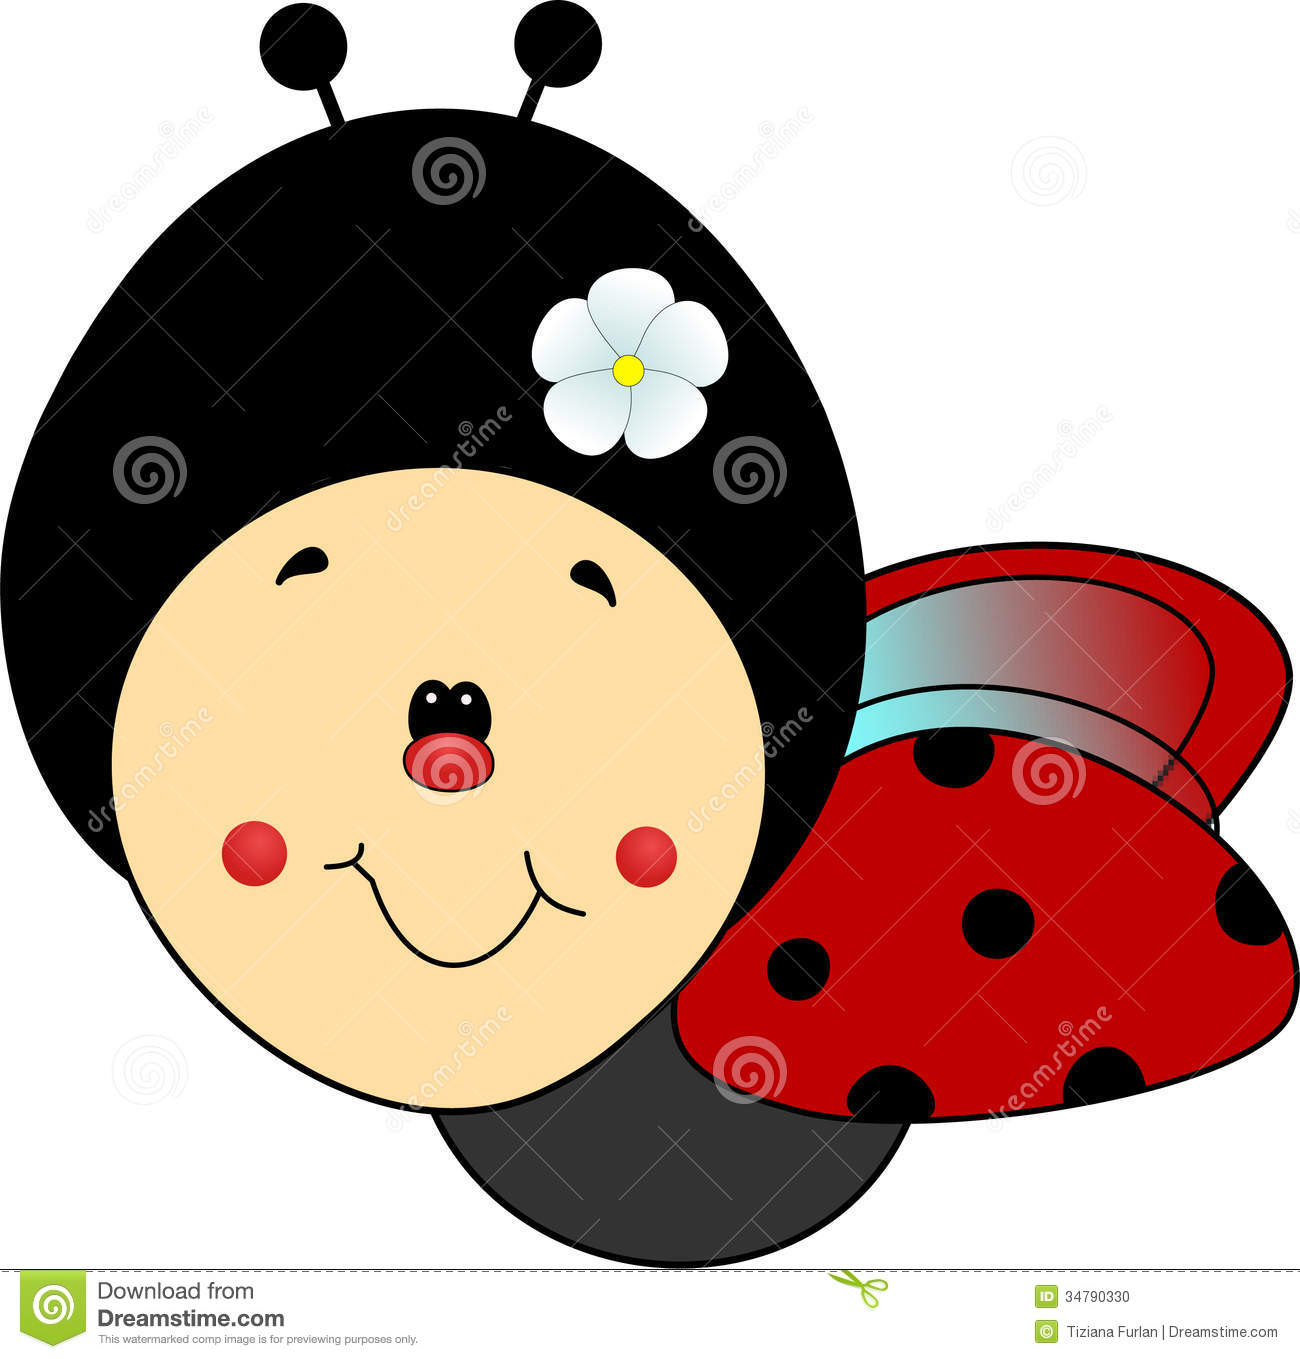 Lady Beetle clipart cute smile Ladybug Clipart Images Flying Clipart